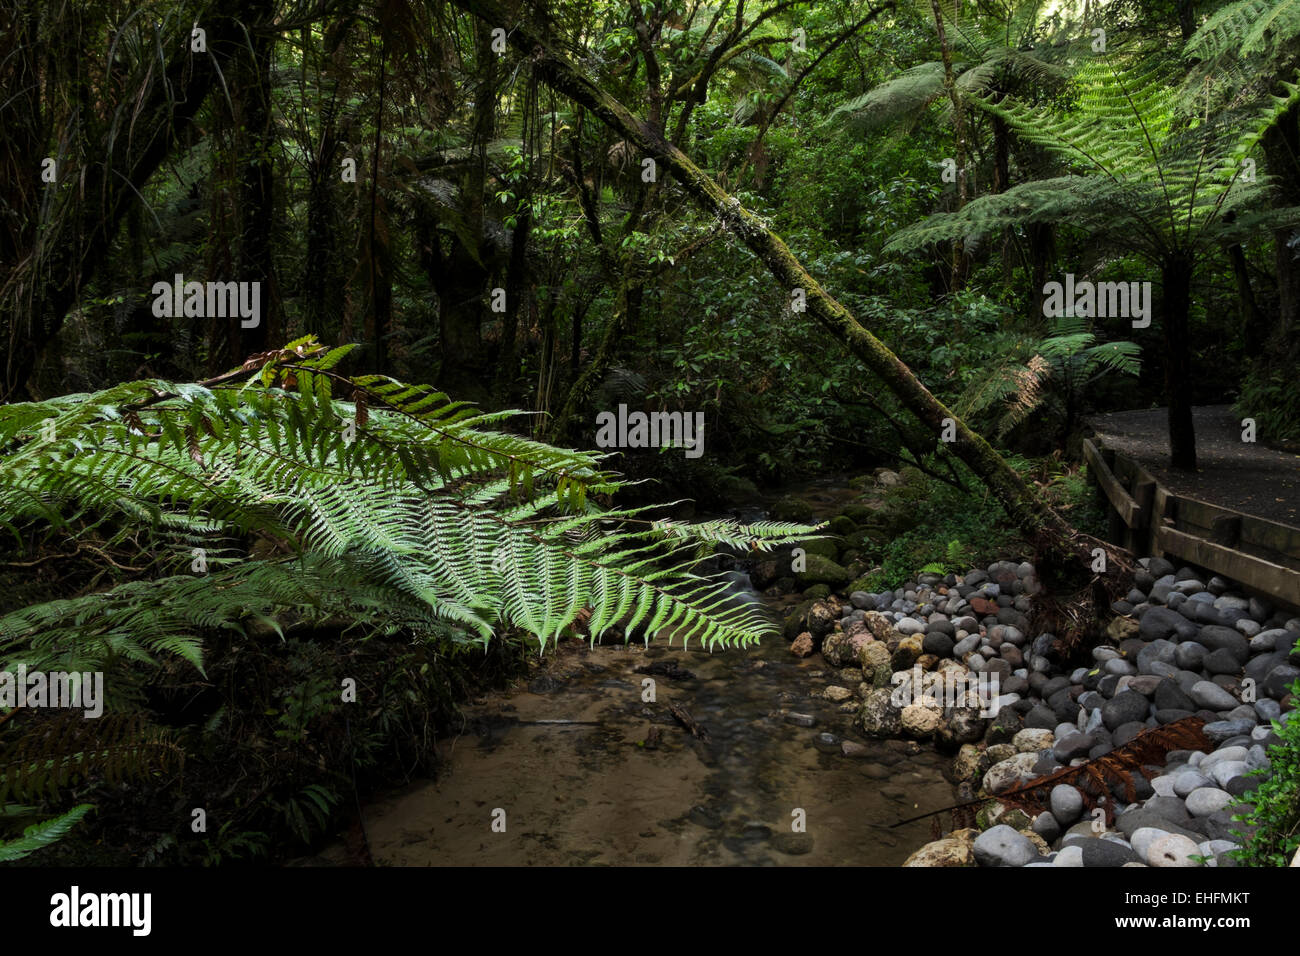 Bush walk at Mc Laren falls park in Tauranga, New Zealand. - Stock Image